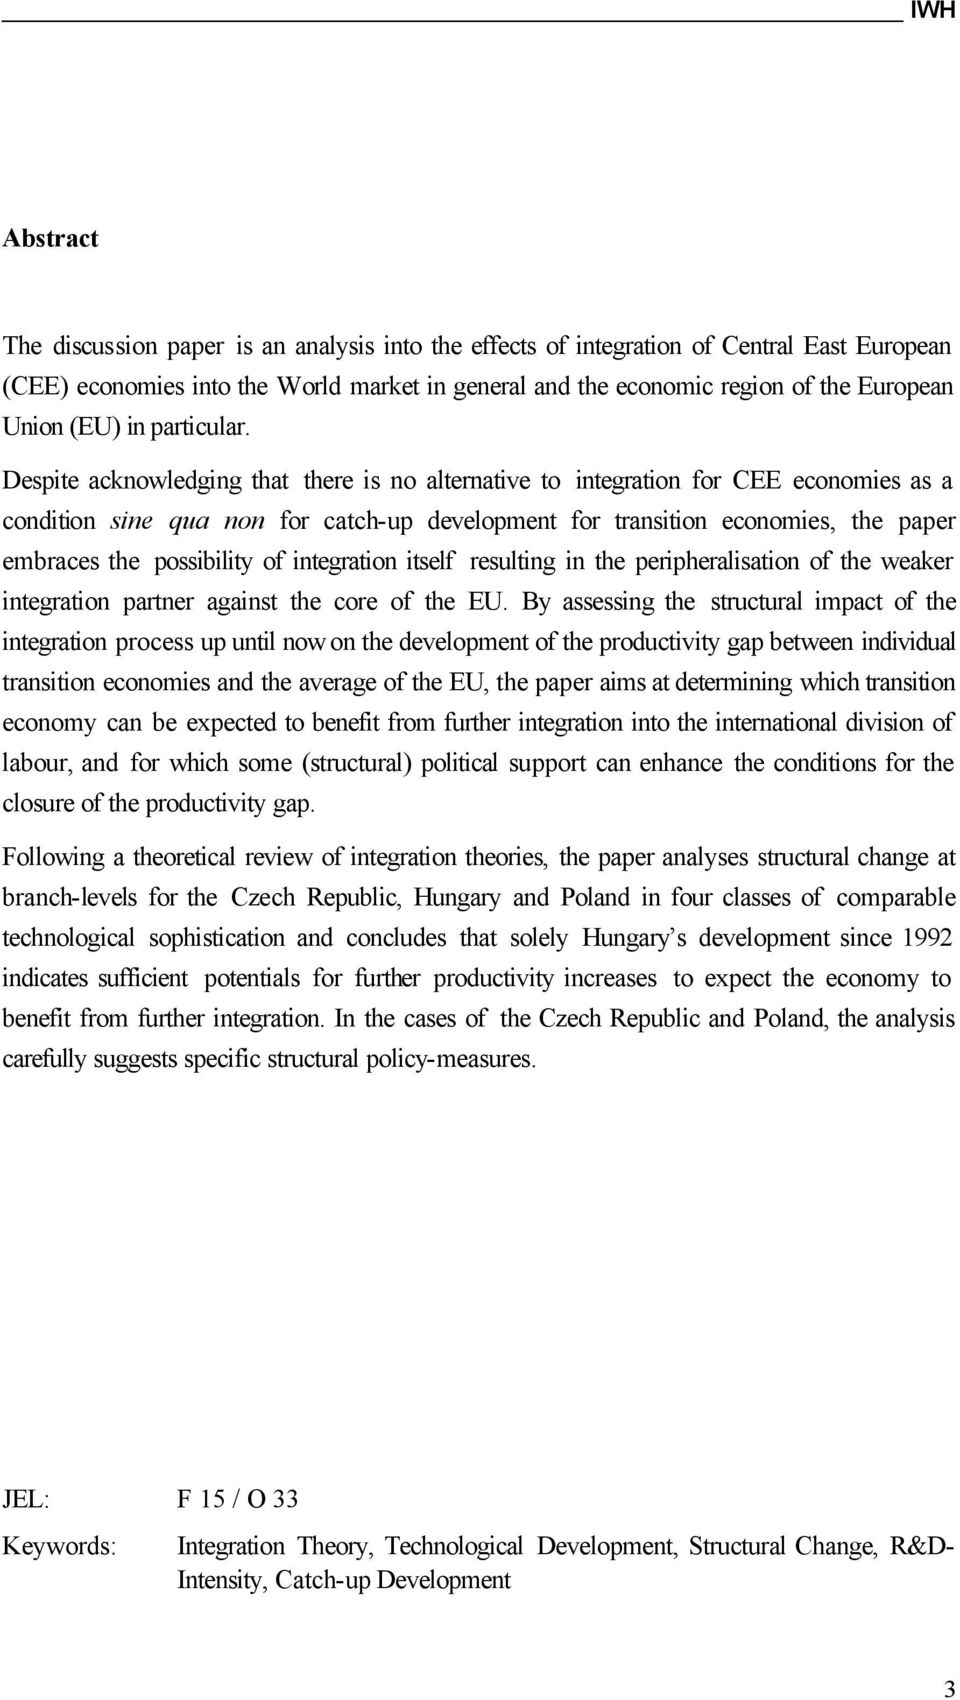 Despite acknowledging that there is no alternative to integration for CEE economies as a condition sine qua non for catch-up development for transition economies, the paper embraces the possibility